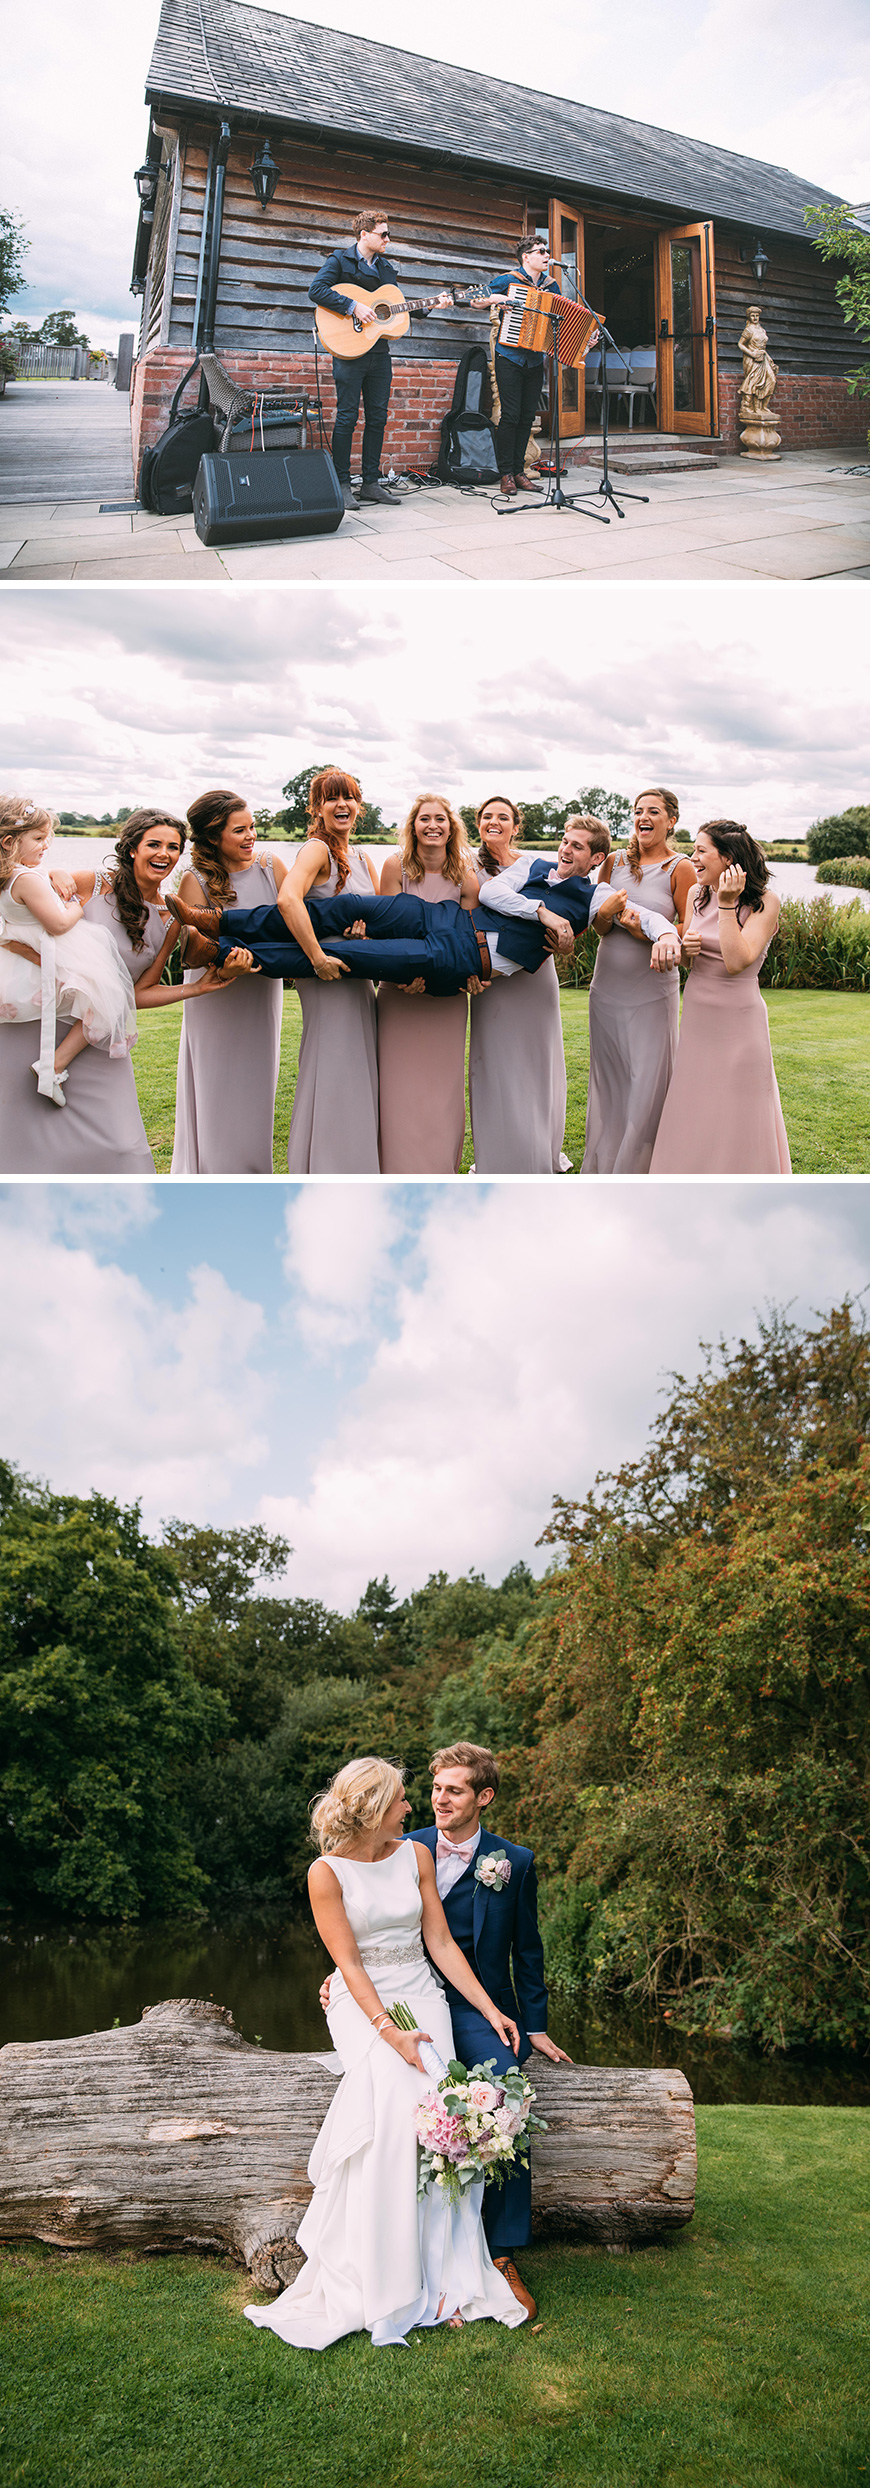 Real Wedding - Summer Pinks at Sandhole Oak Barn | CHWV